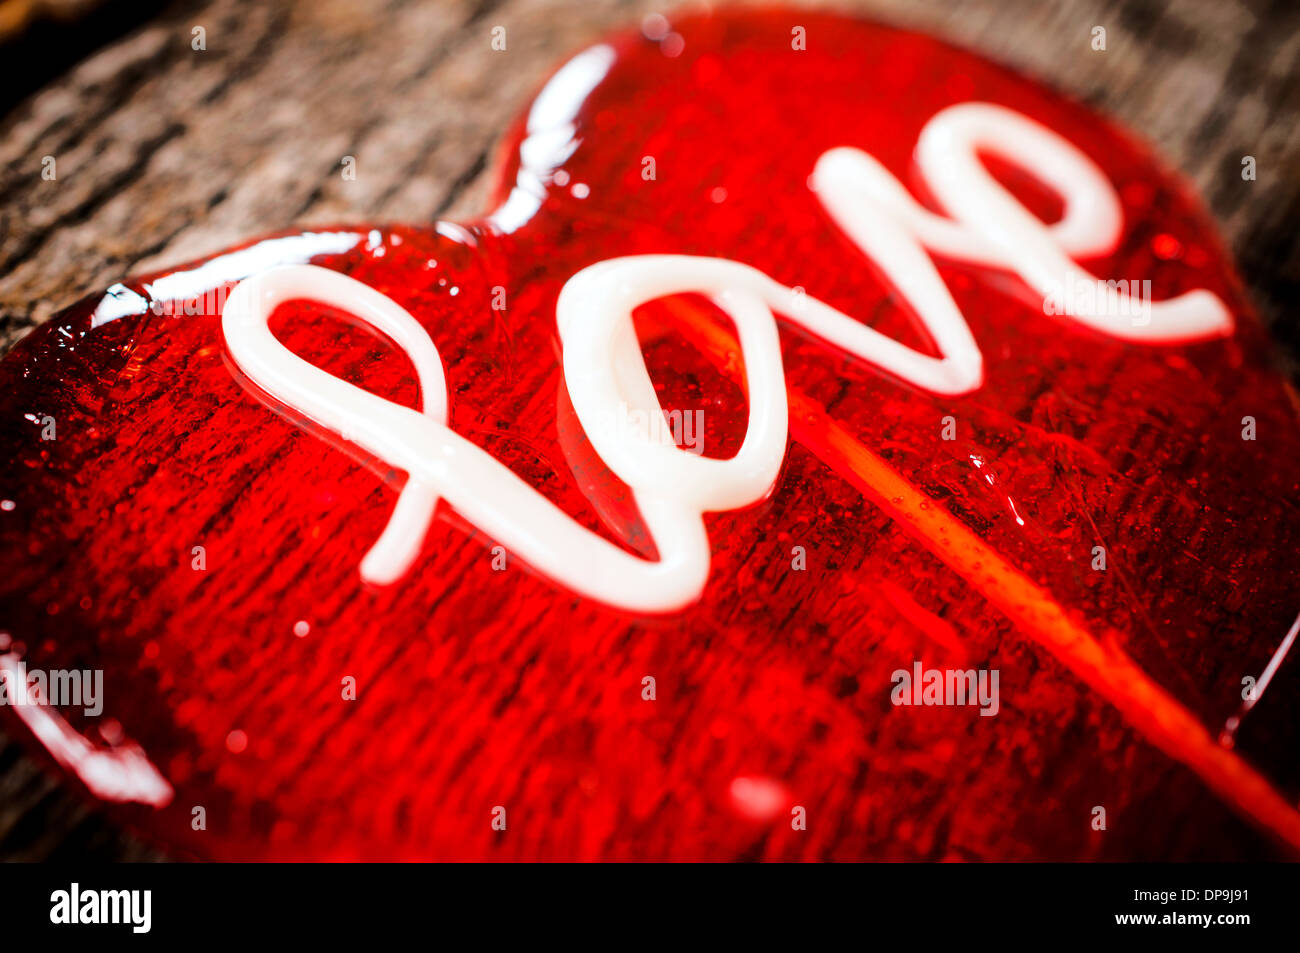 Selective focus on the letter L on heart shape lolly pop - Stock Image